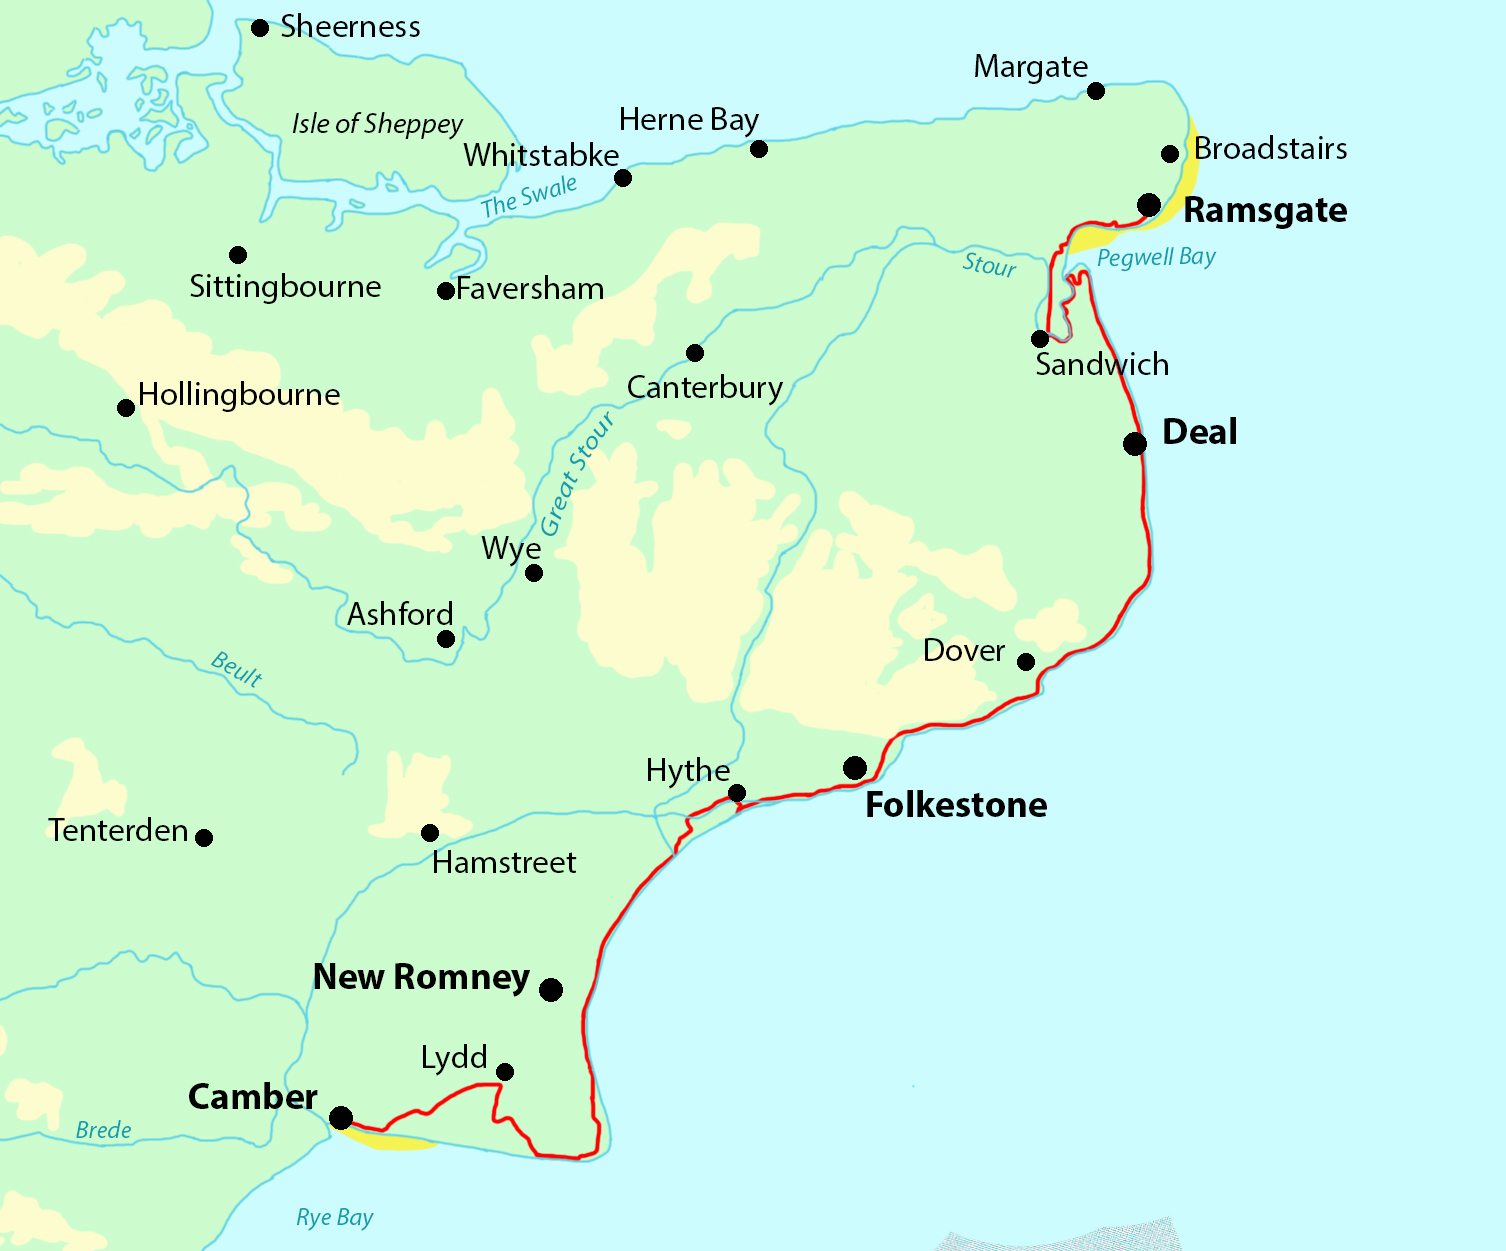 Kent Coast Path in 4-8 Days — Contours Walking Holidays on fraser valley regional district map, derbyshire map, norte map, hertfordshire map, sussex map, cornwall map, london map, scotland map, mercia map, khan map, isle of wight map, dorsetshire map, cleveland park map, maidstone map, flevoland map, wychwood map, united kingdom map, wales map, surrey map, hampshire map,